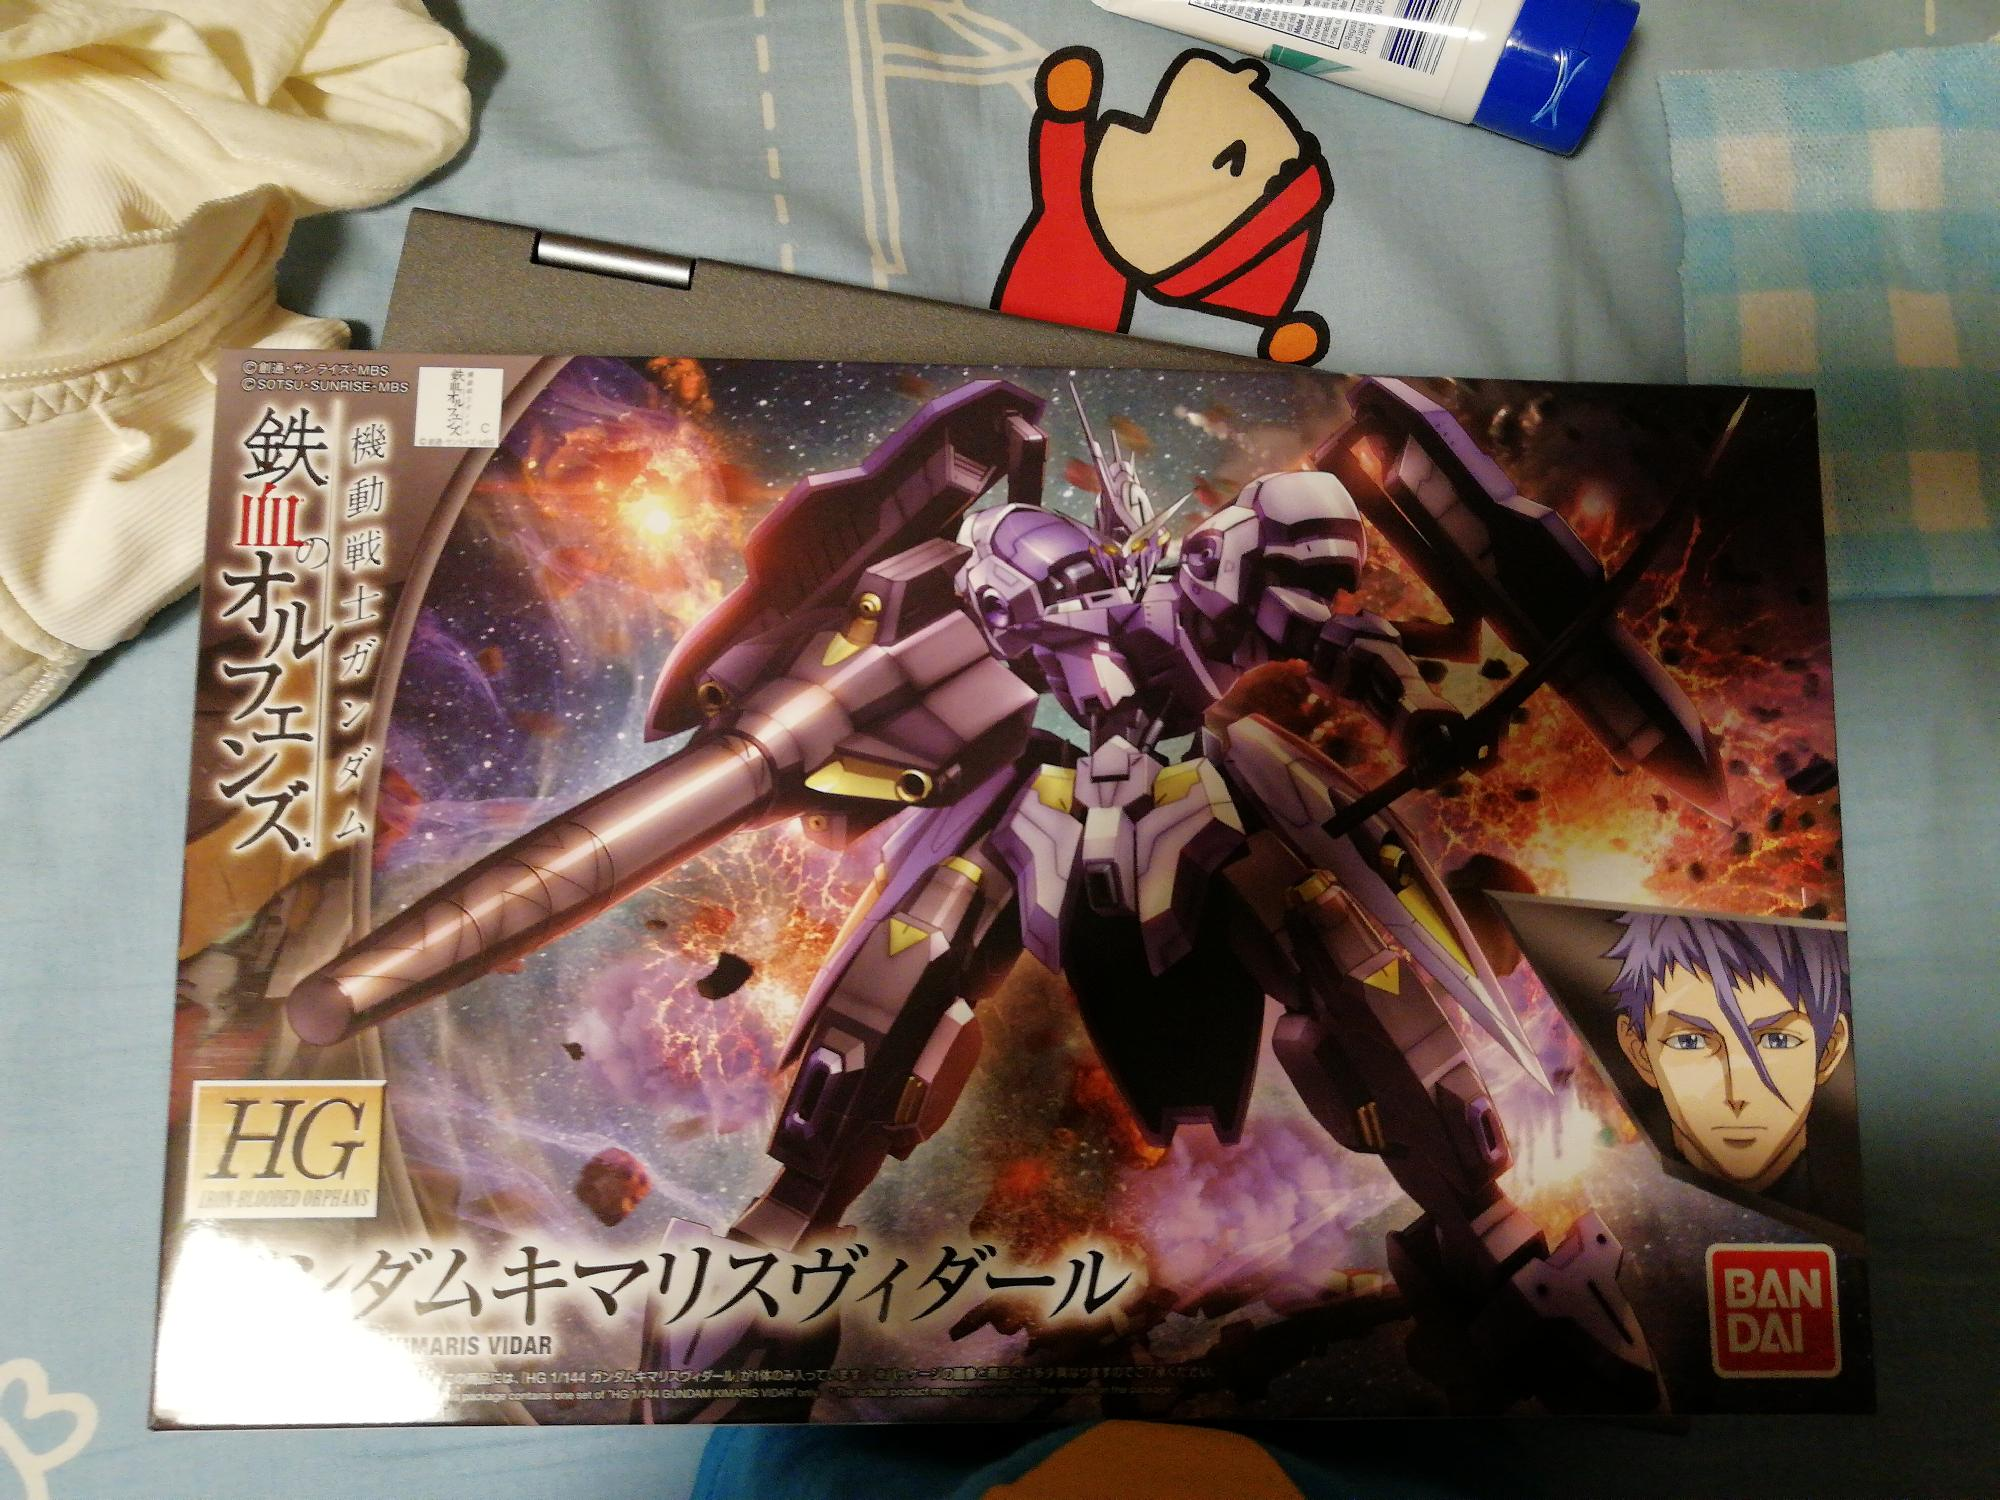 Just got my new kimaris vidar, should i paint it?